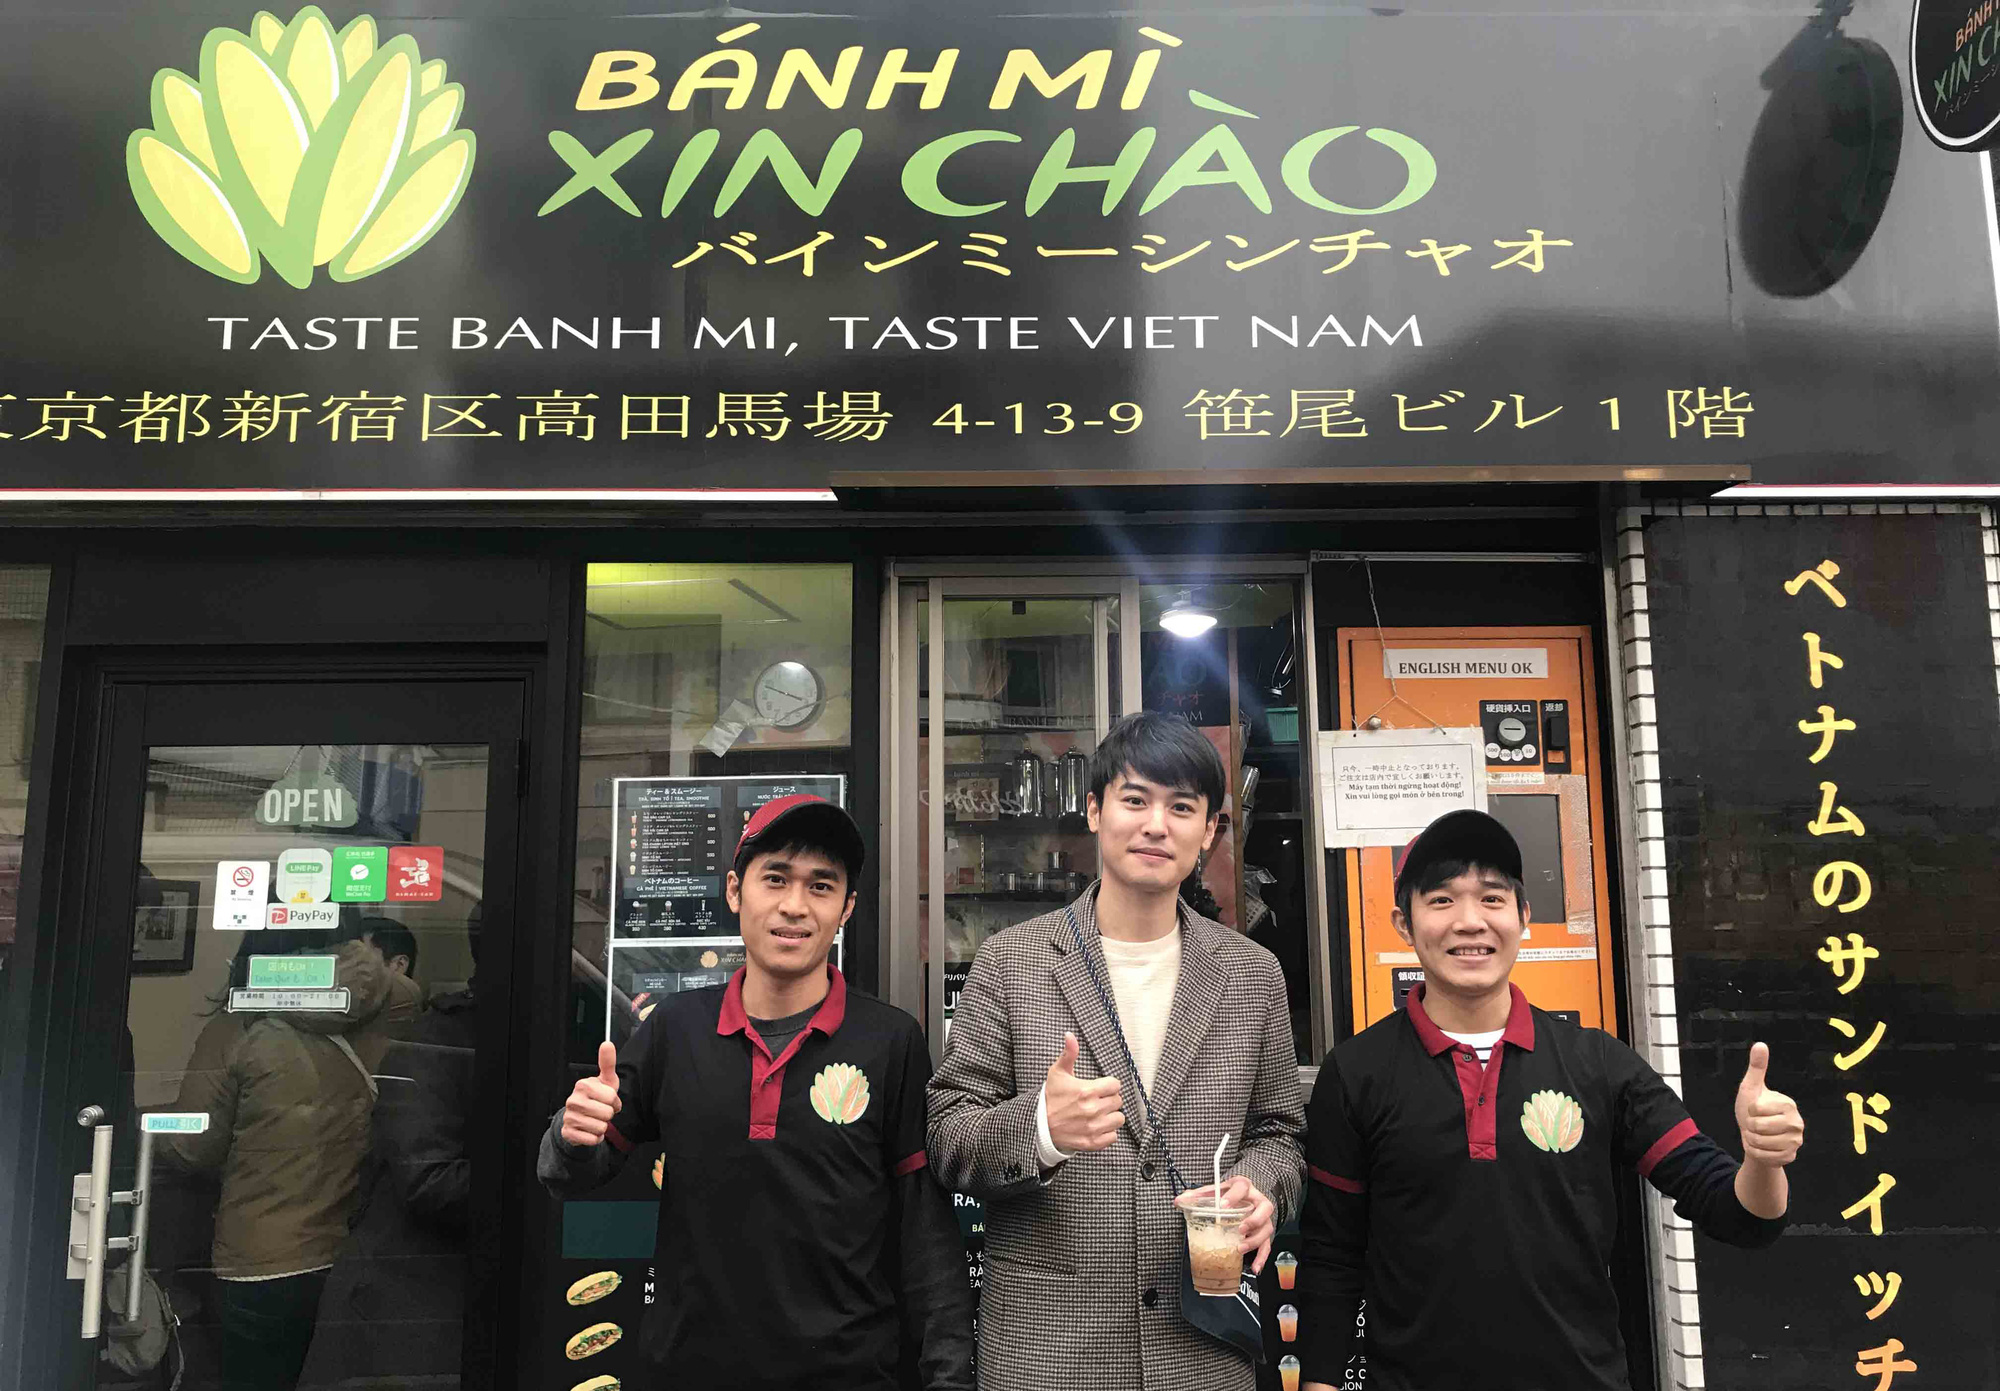 Japanese actor Horii Arata (center) from the national broadcaster NHK poses with Vietnamese brothers Bui Thanh Tam and Bui Thanh Duy in front of one of the duo's Banh Mi Xin Chao stores in Tokyo, Japan in a supplied photo taken in early 2020. Photo: Duy Tam